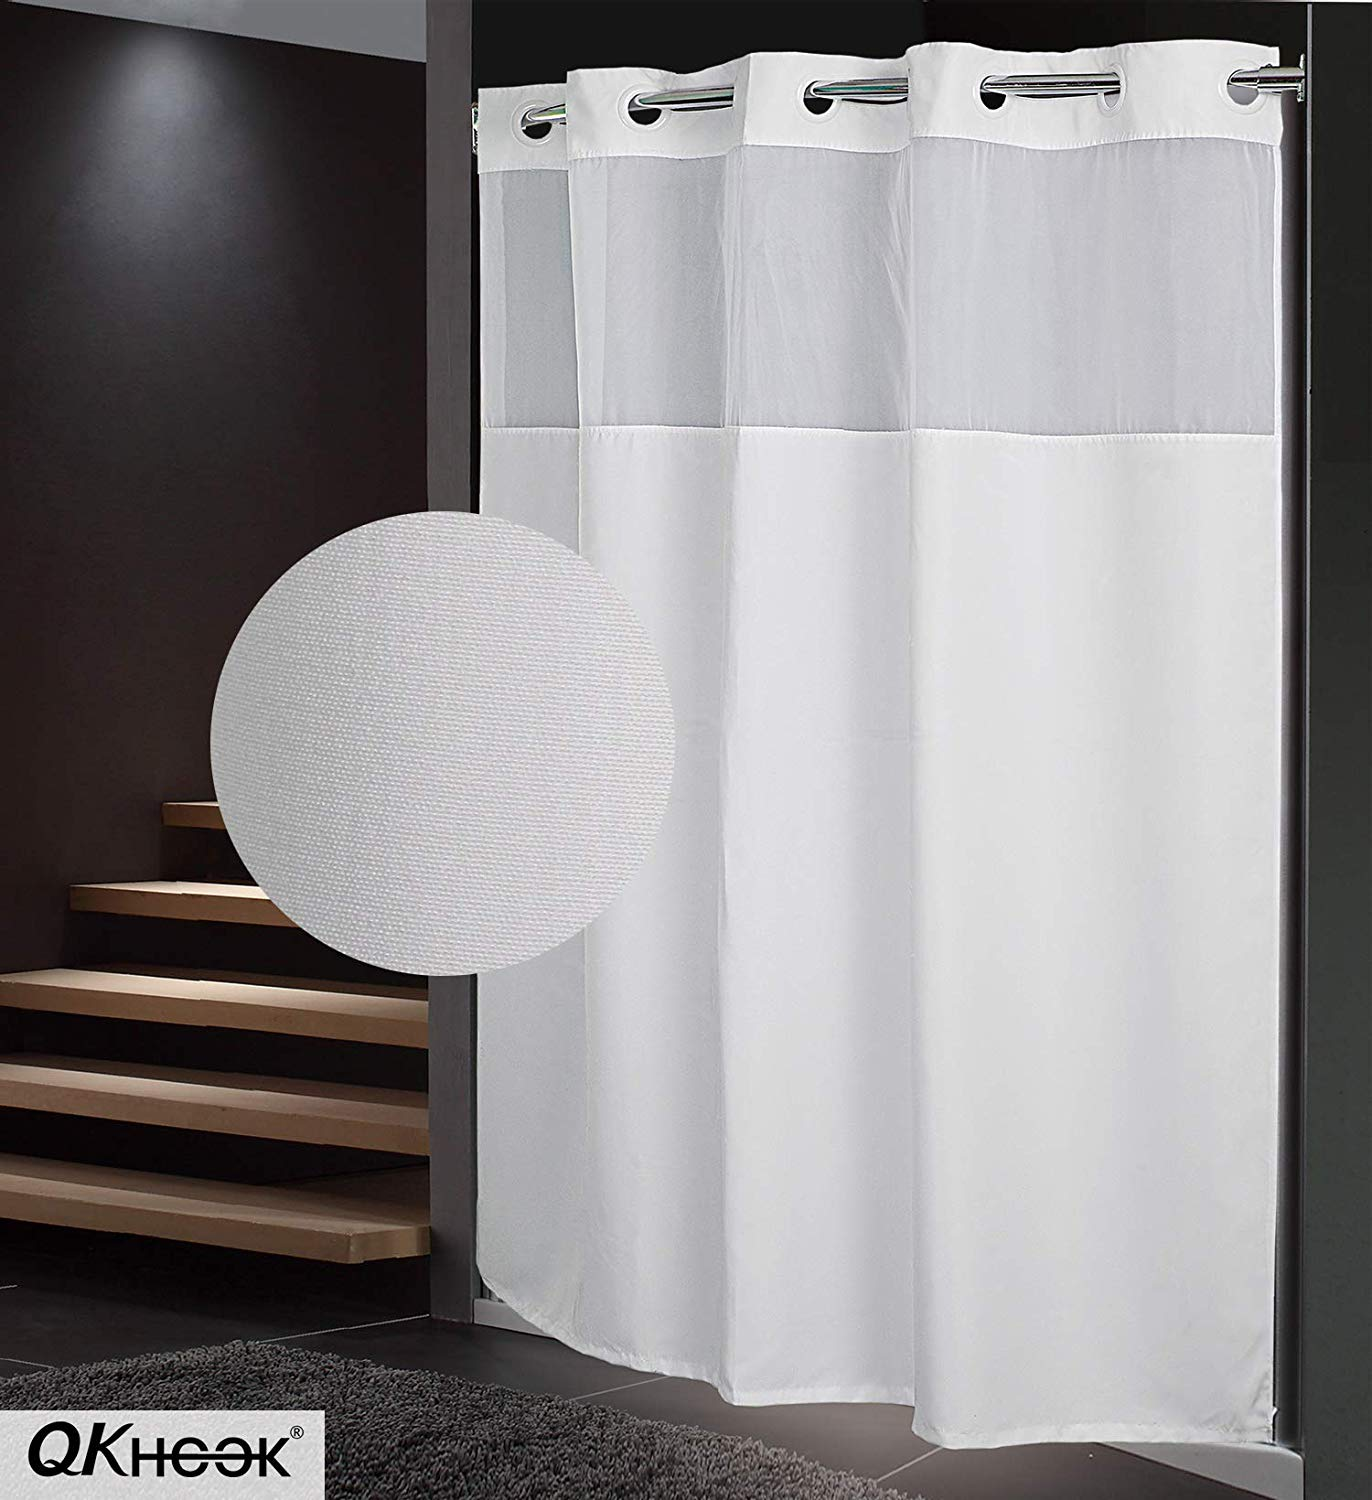 qkhook hookless shower curtain with snap in liner 1 packs 71x74 inches mildew resistant fabric plain water repellent and antibacterial